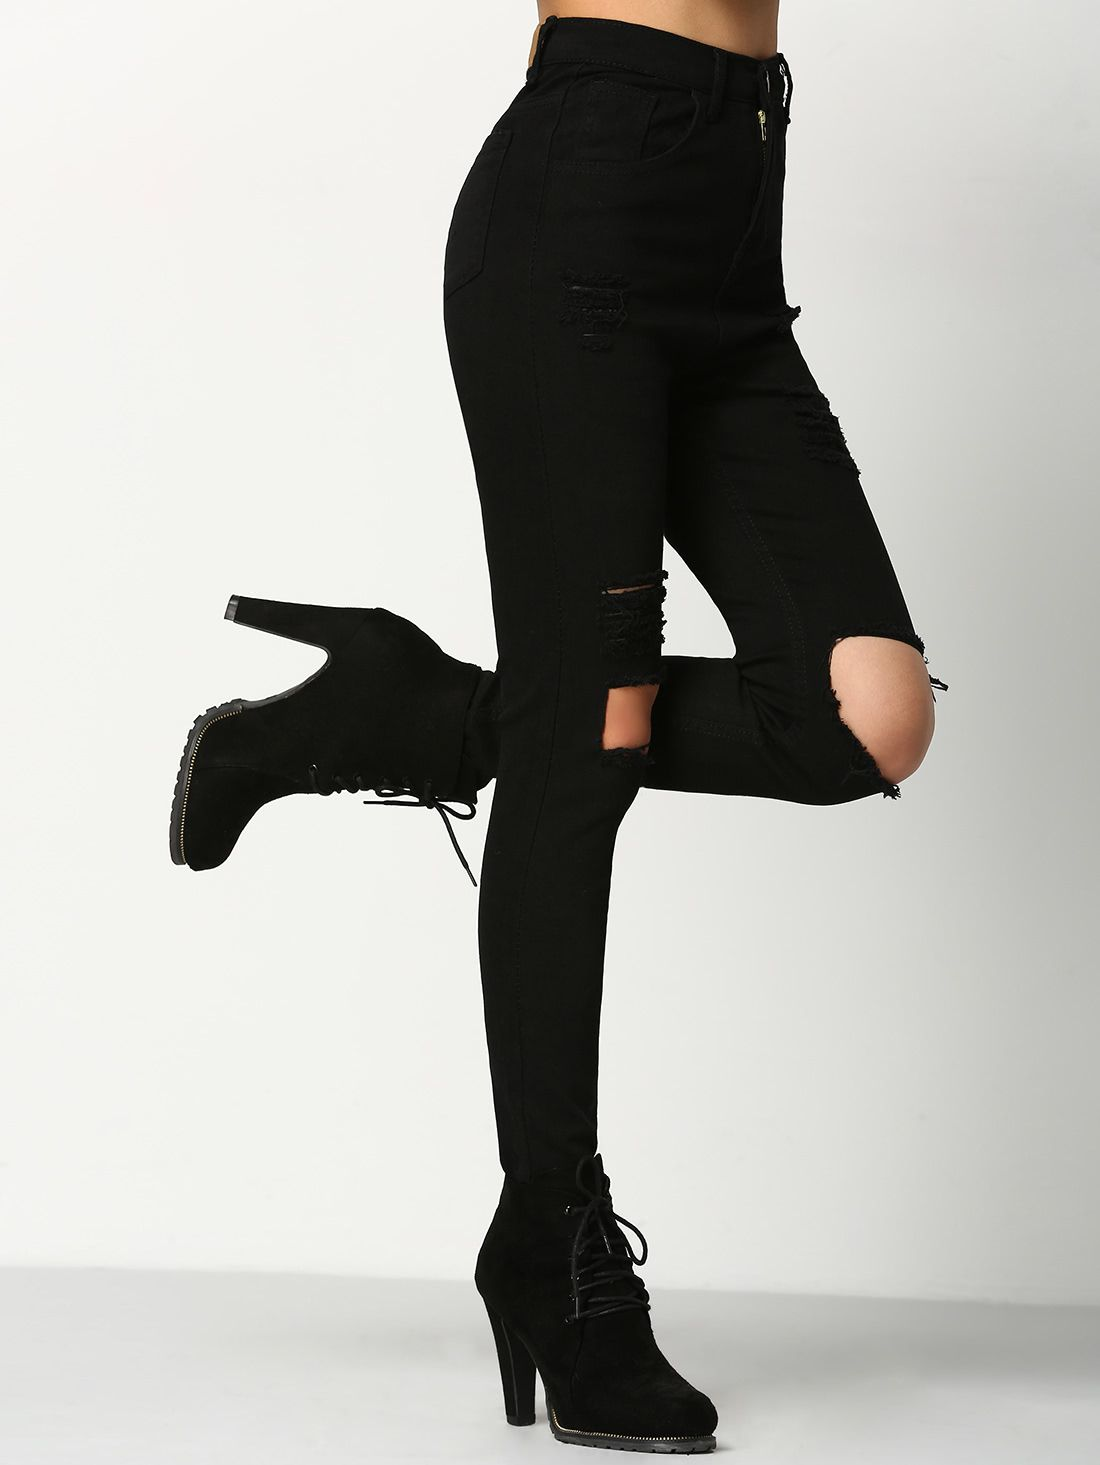 Romwe Black Ripped Jeans